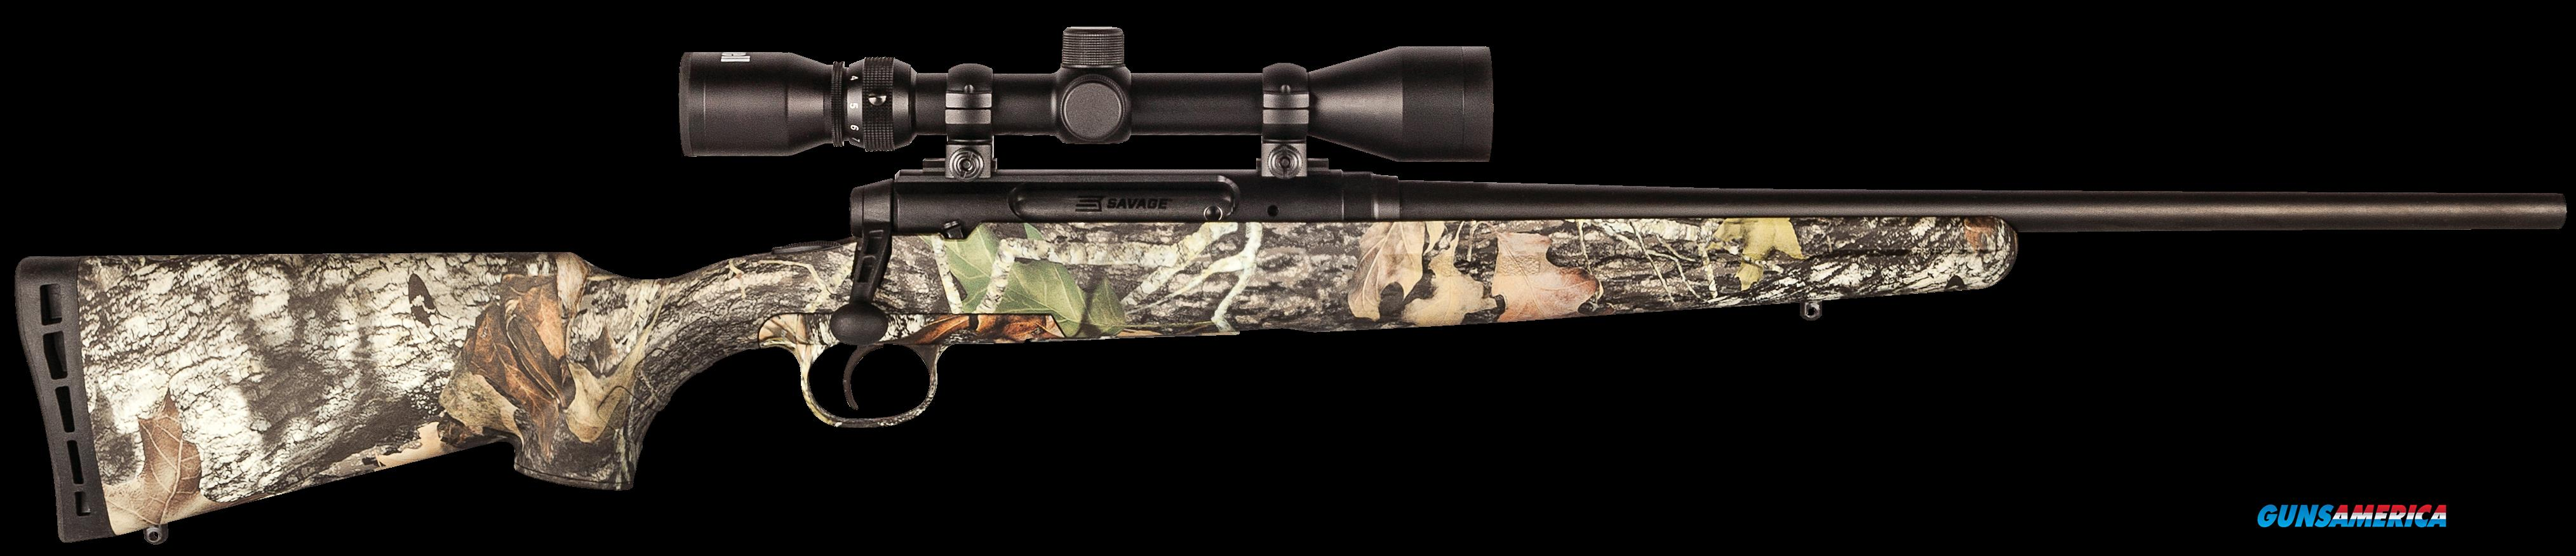 "Savage 19972 Axis XP Compact Camo with Scope Bolt 223 Remington 20"" 4+1 Synthetic Realtree Xtra Stk  Guns > Rifles > S Misc Rifles"